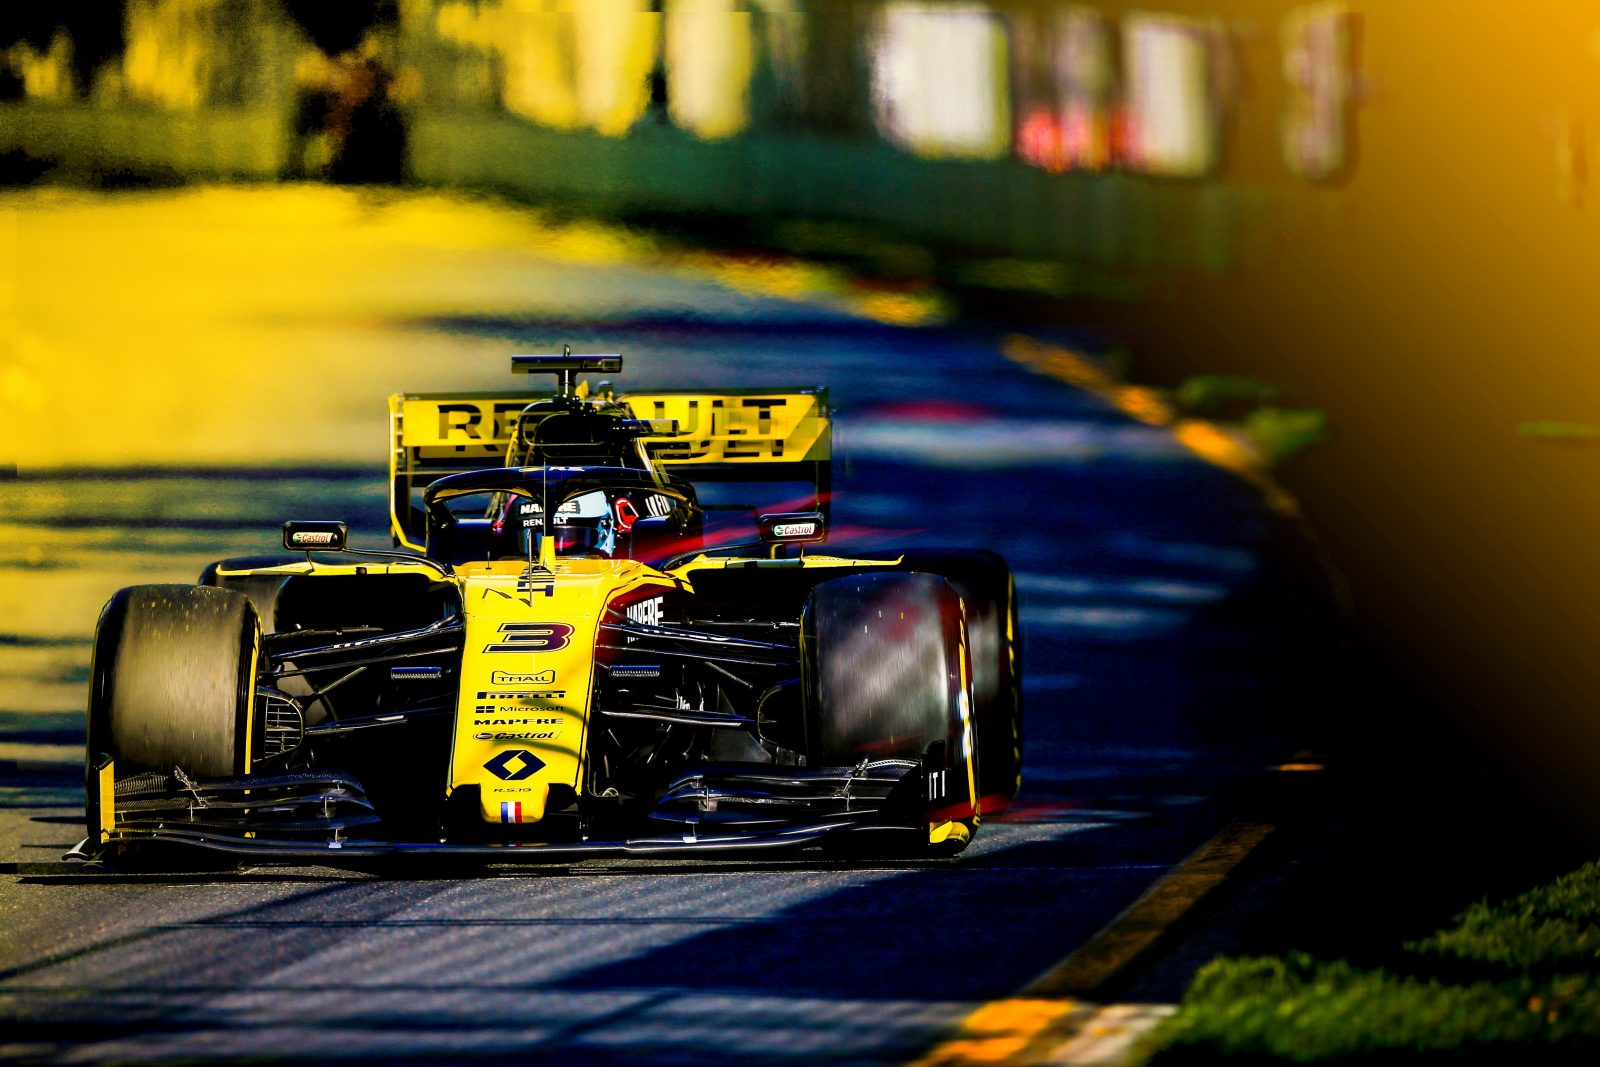 Renault Car Filtered